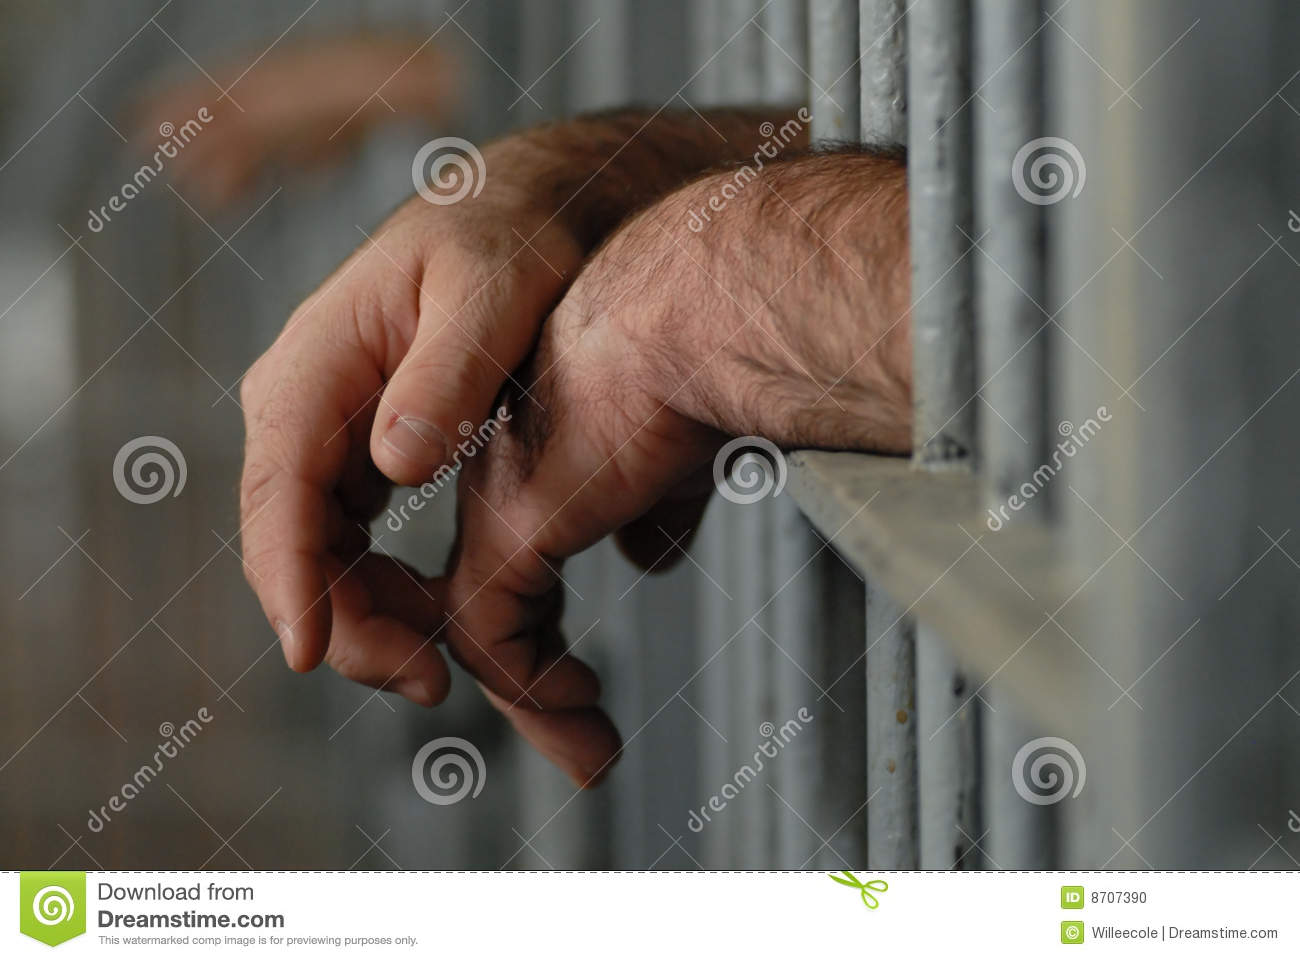 Man in jail or prison